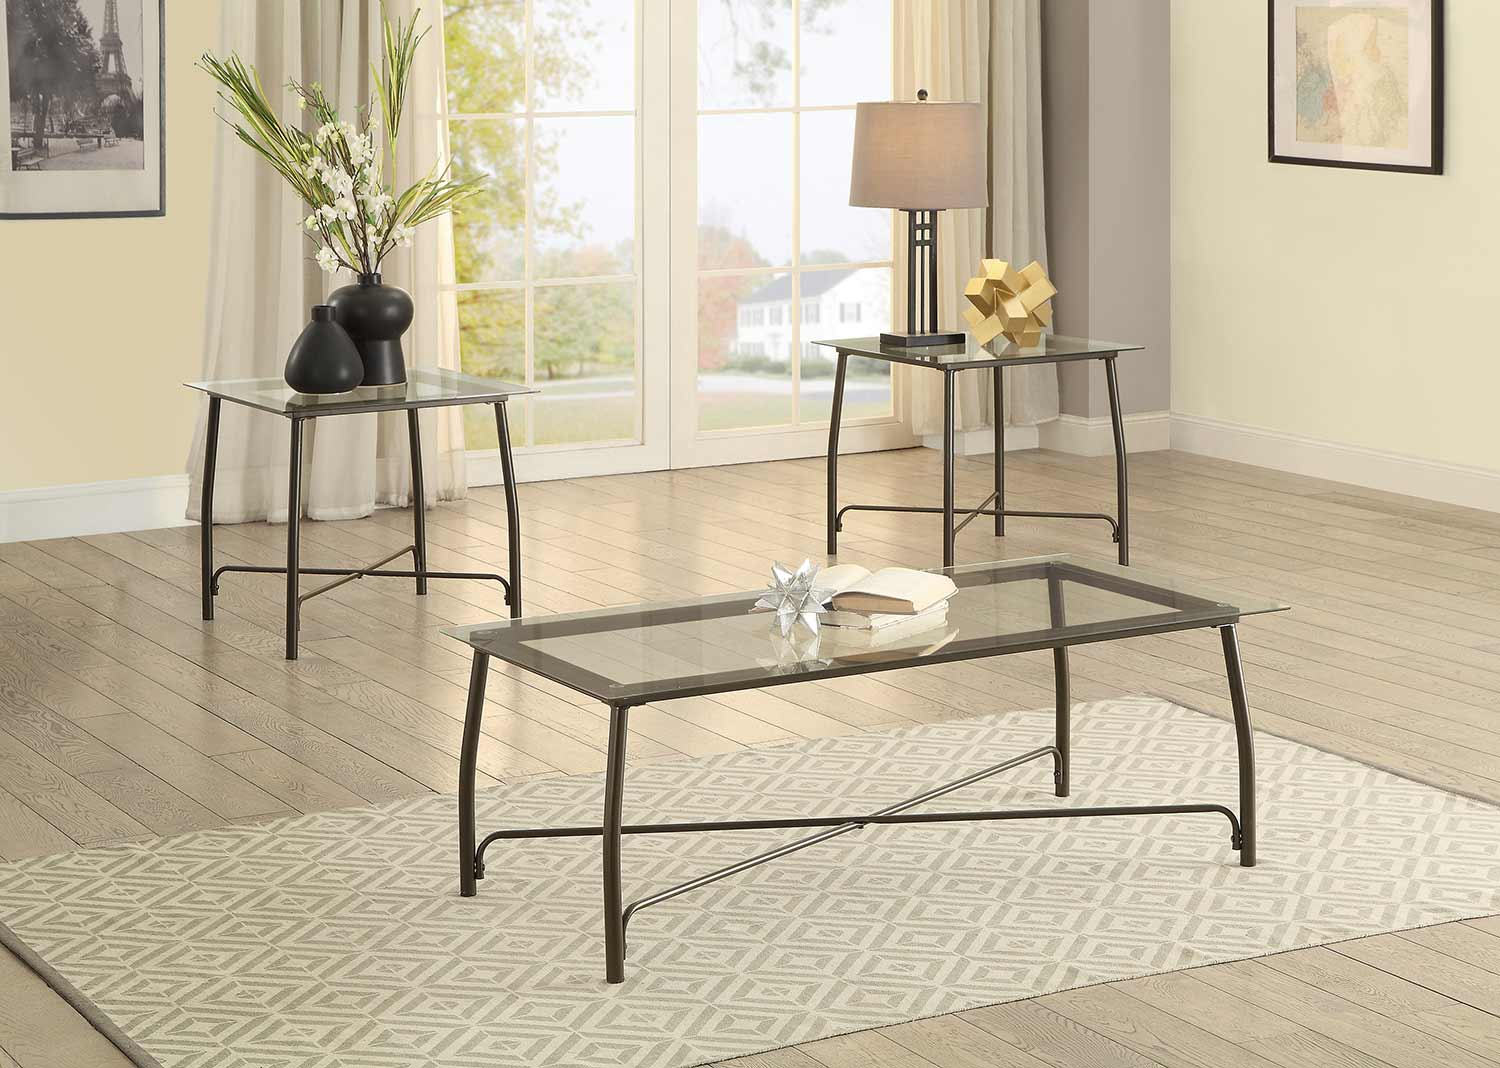 Homelegance Suisun 3-Piece Occasional Tables with Glass Top